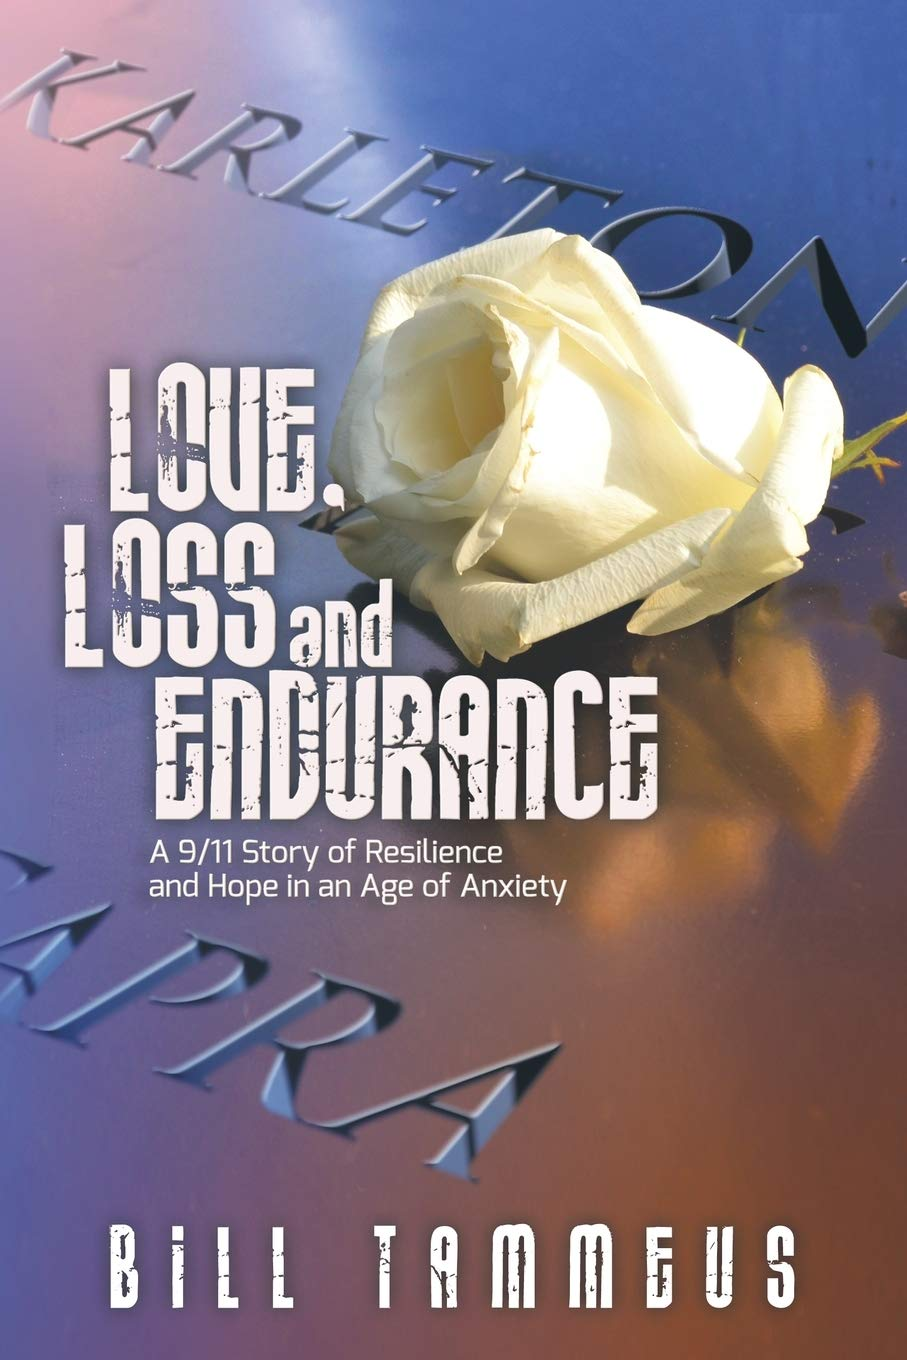 Love, Loss and Endurance: A 9/11 Story of Resilience and Hope in an Age of Anxiety